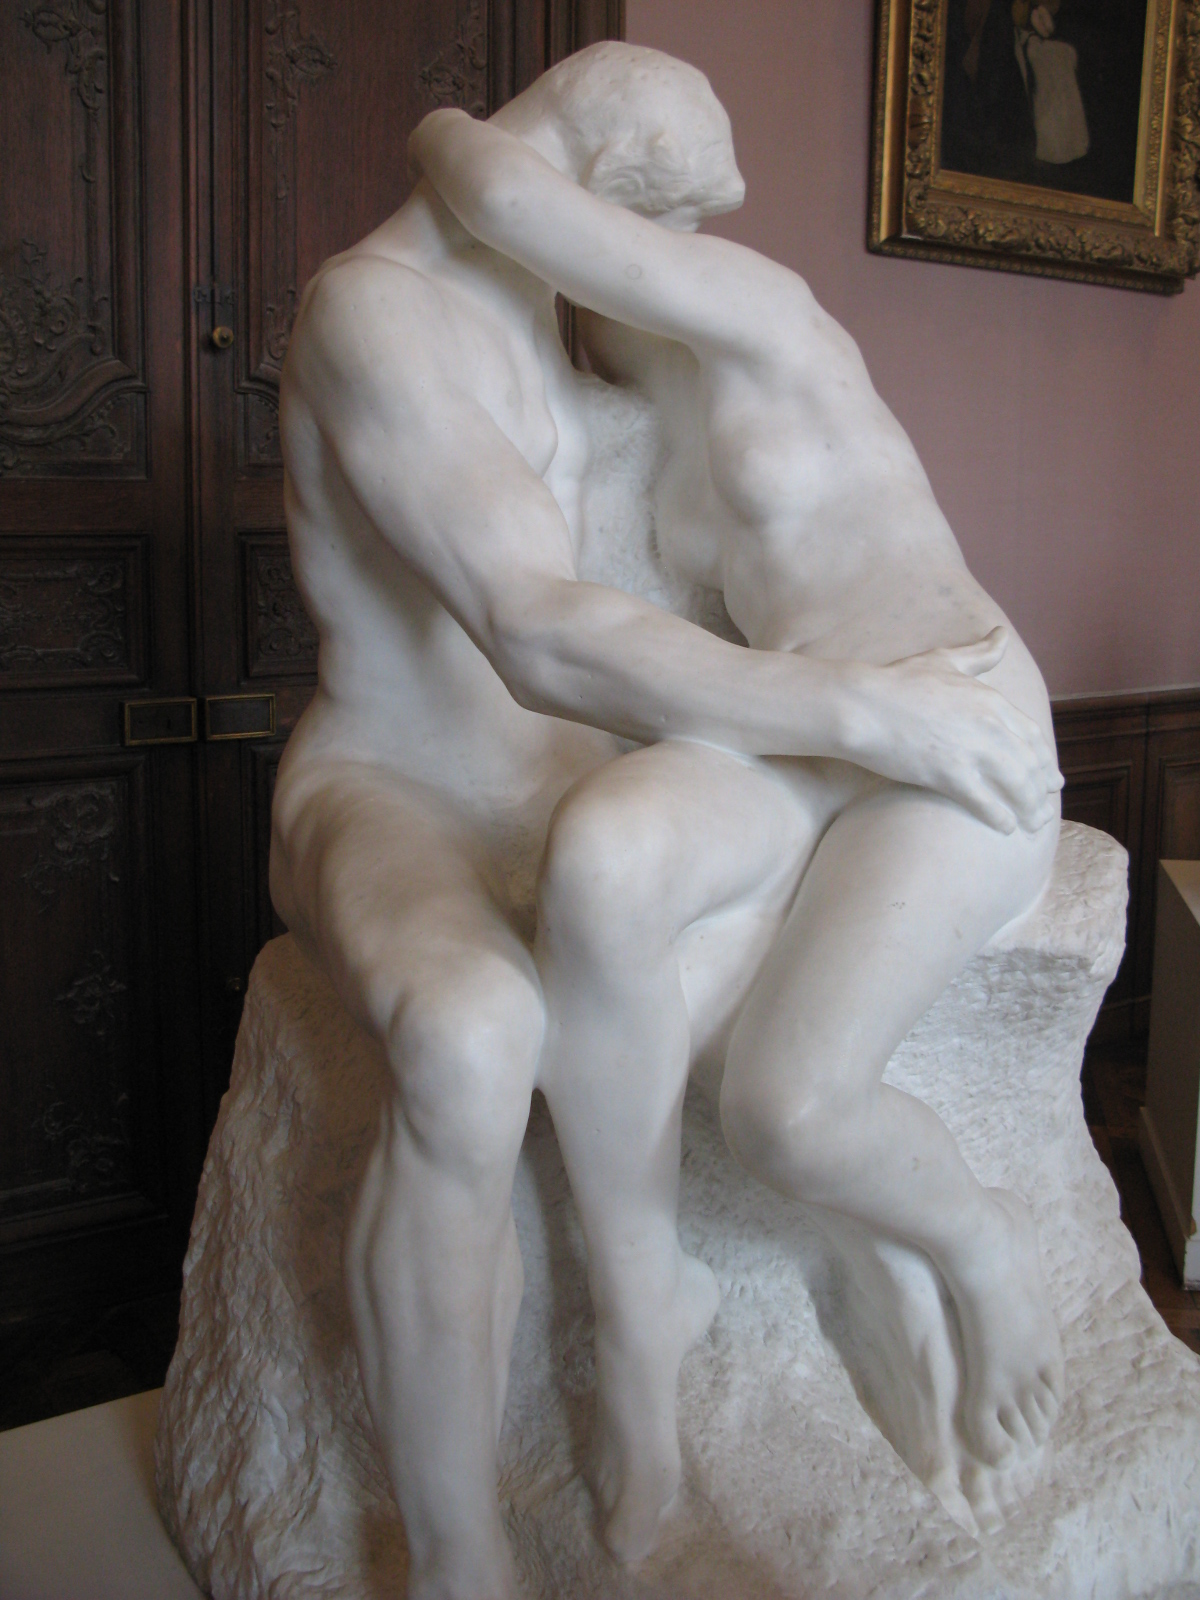 """the kiss marble sculpture work essay """"psyche revived by cupid's kiss"""" is a major work by 18th-century sculptor canova this marble sculpture whose theme is inspired by ancient mythology is displayed in the michelangelo gallery at the louvre museum."""